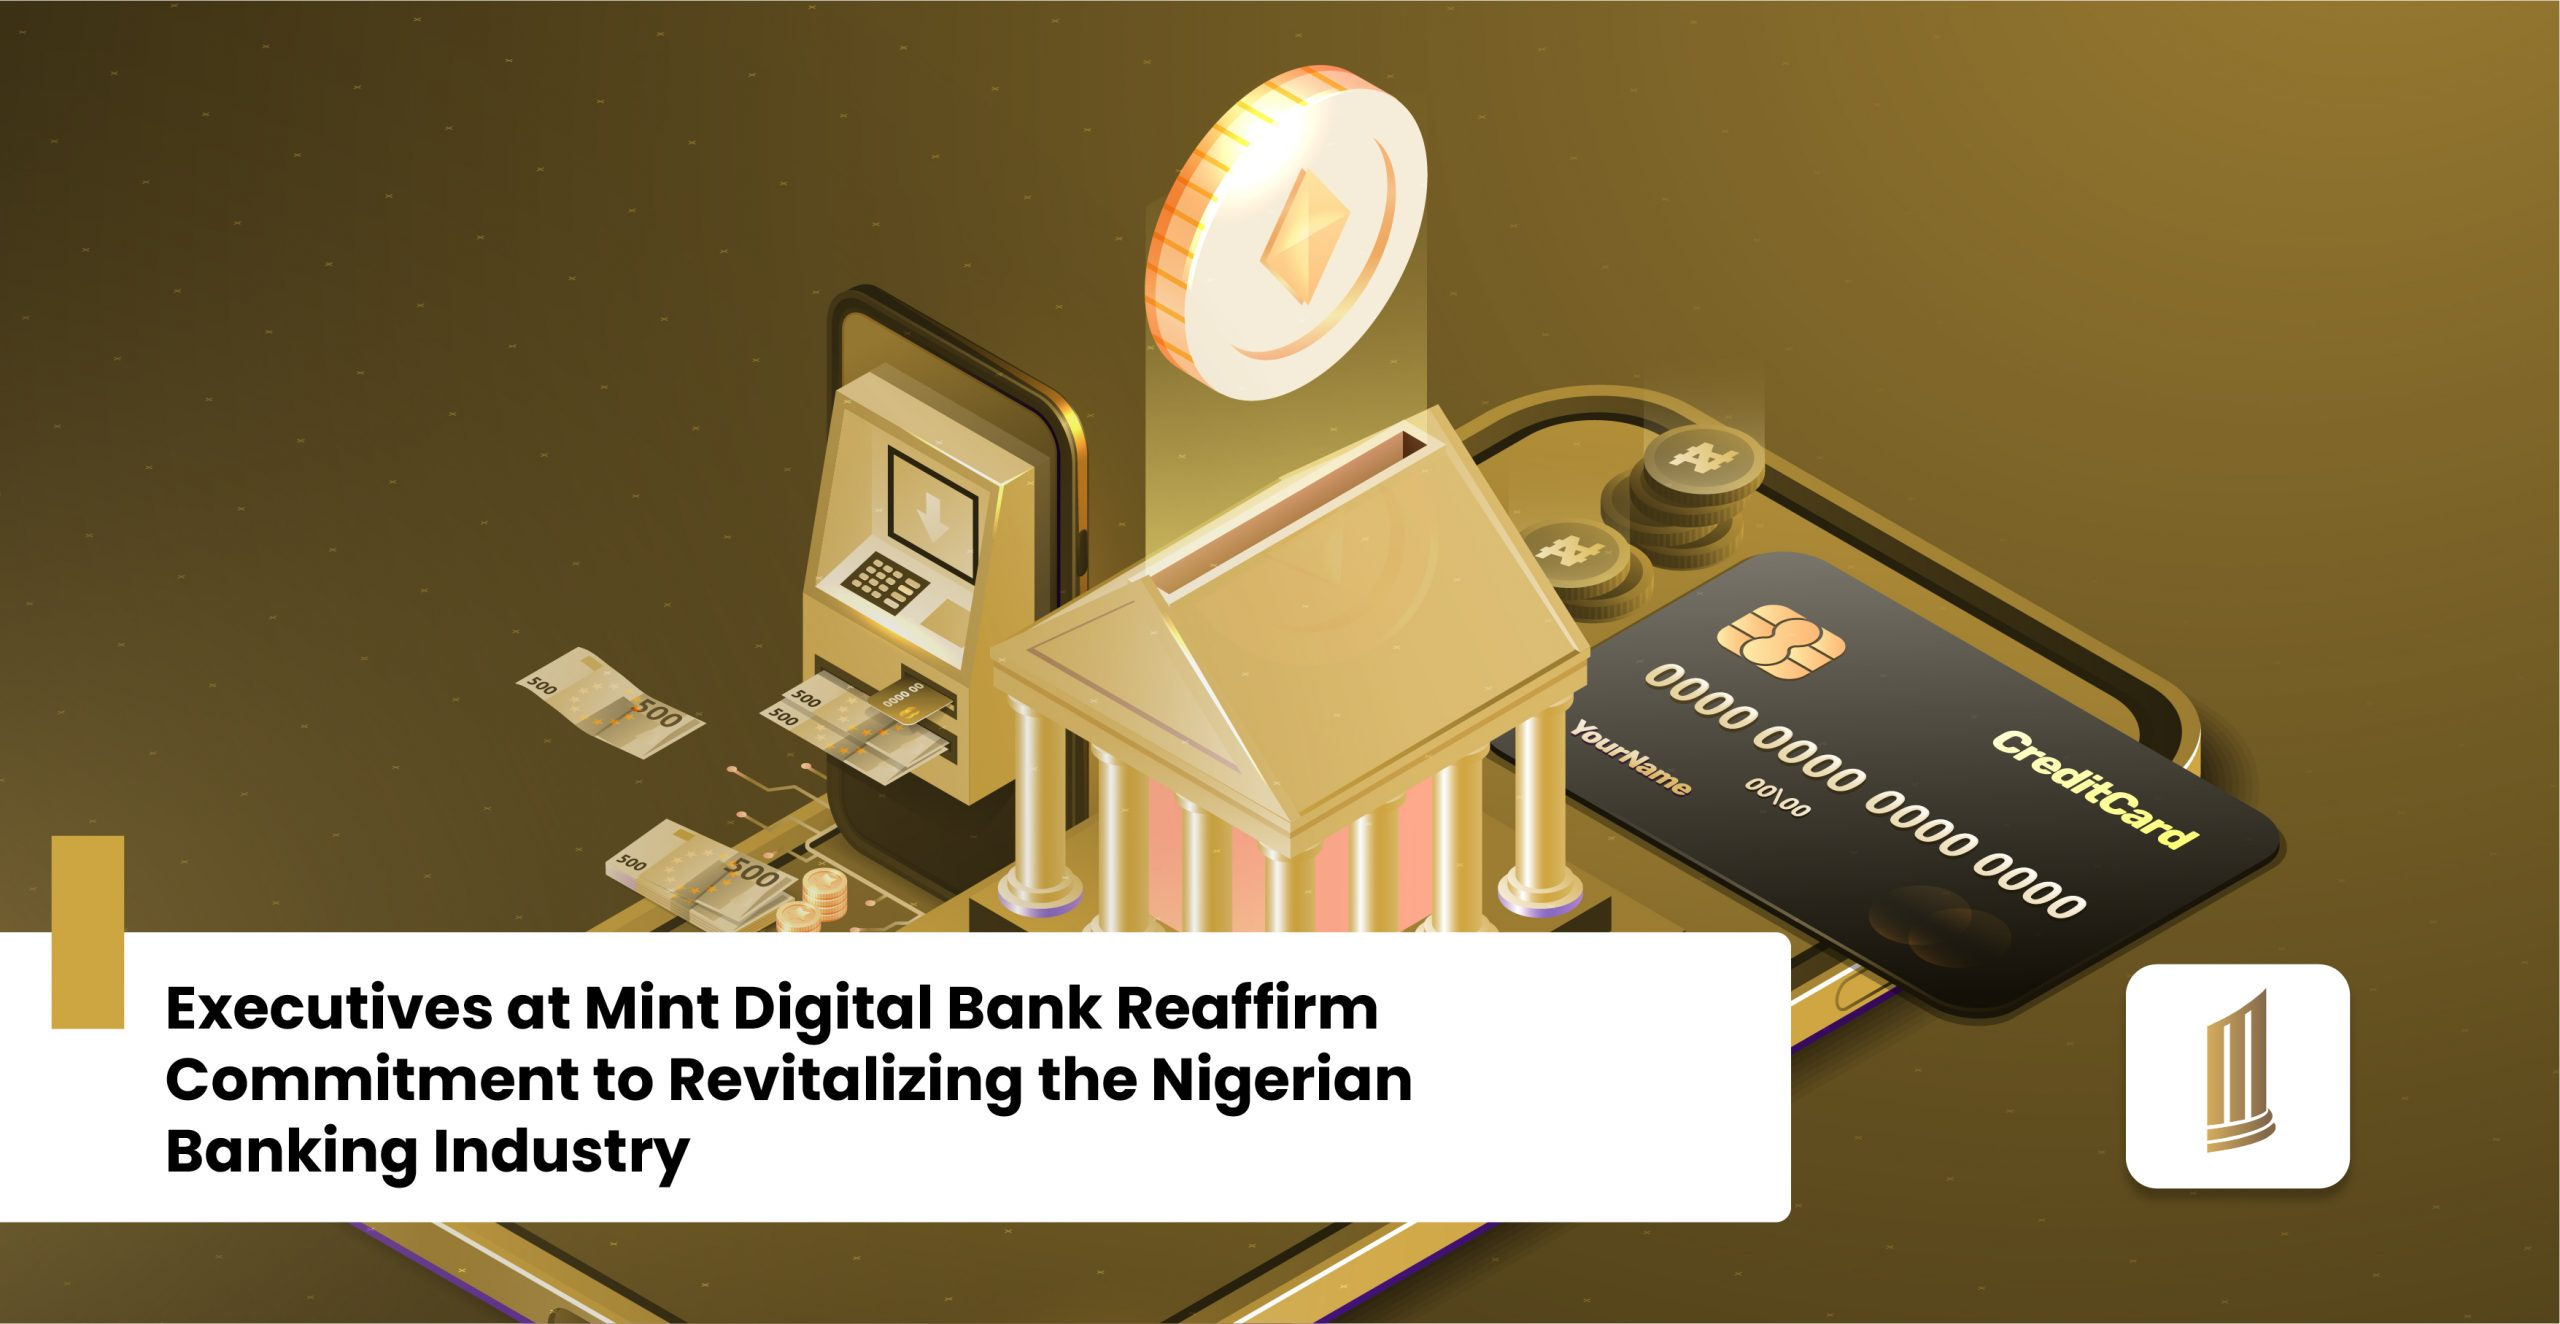 Executives at Mint Digital Bank Reaffirm Commitment to Revitalizing the Nigerian Banking Industry